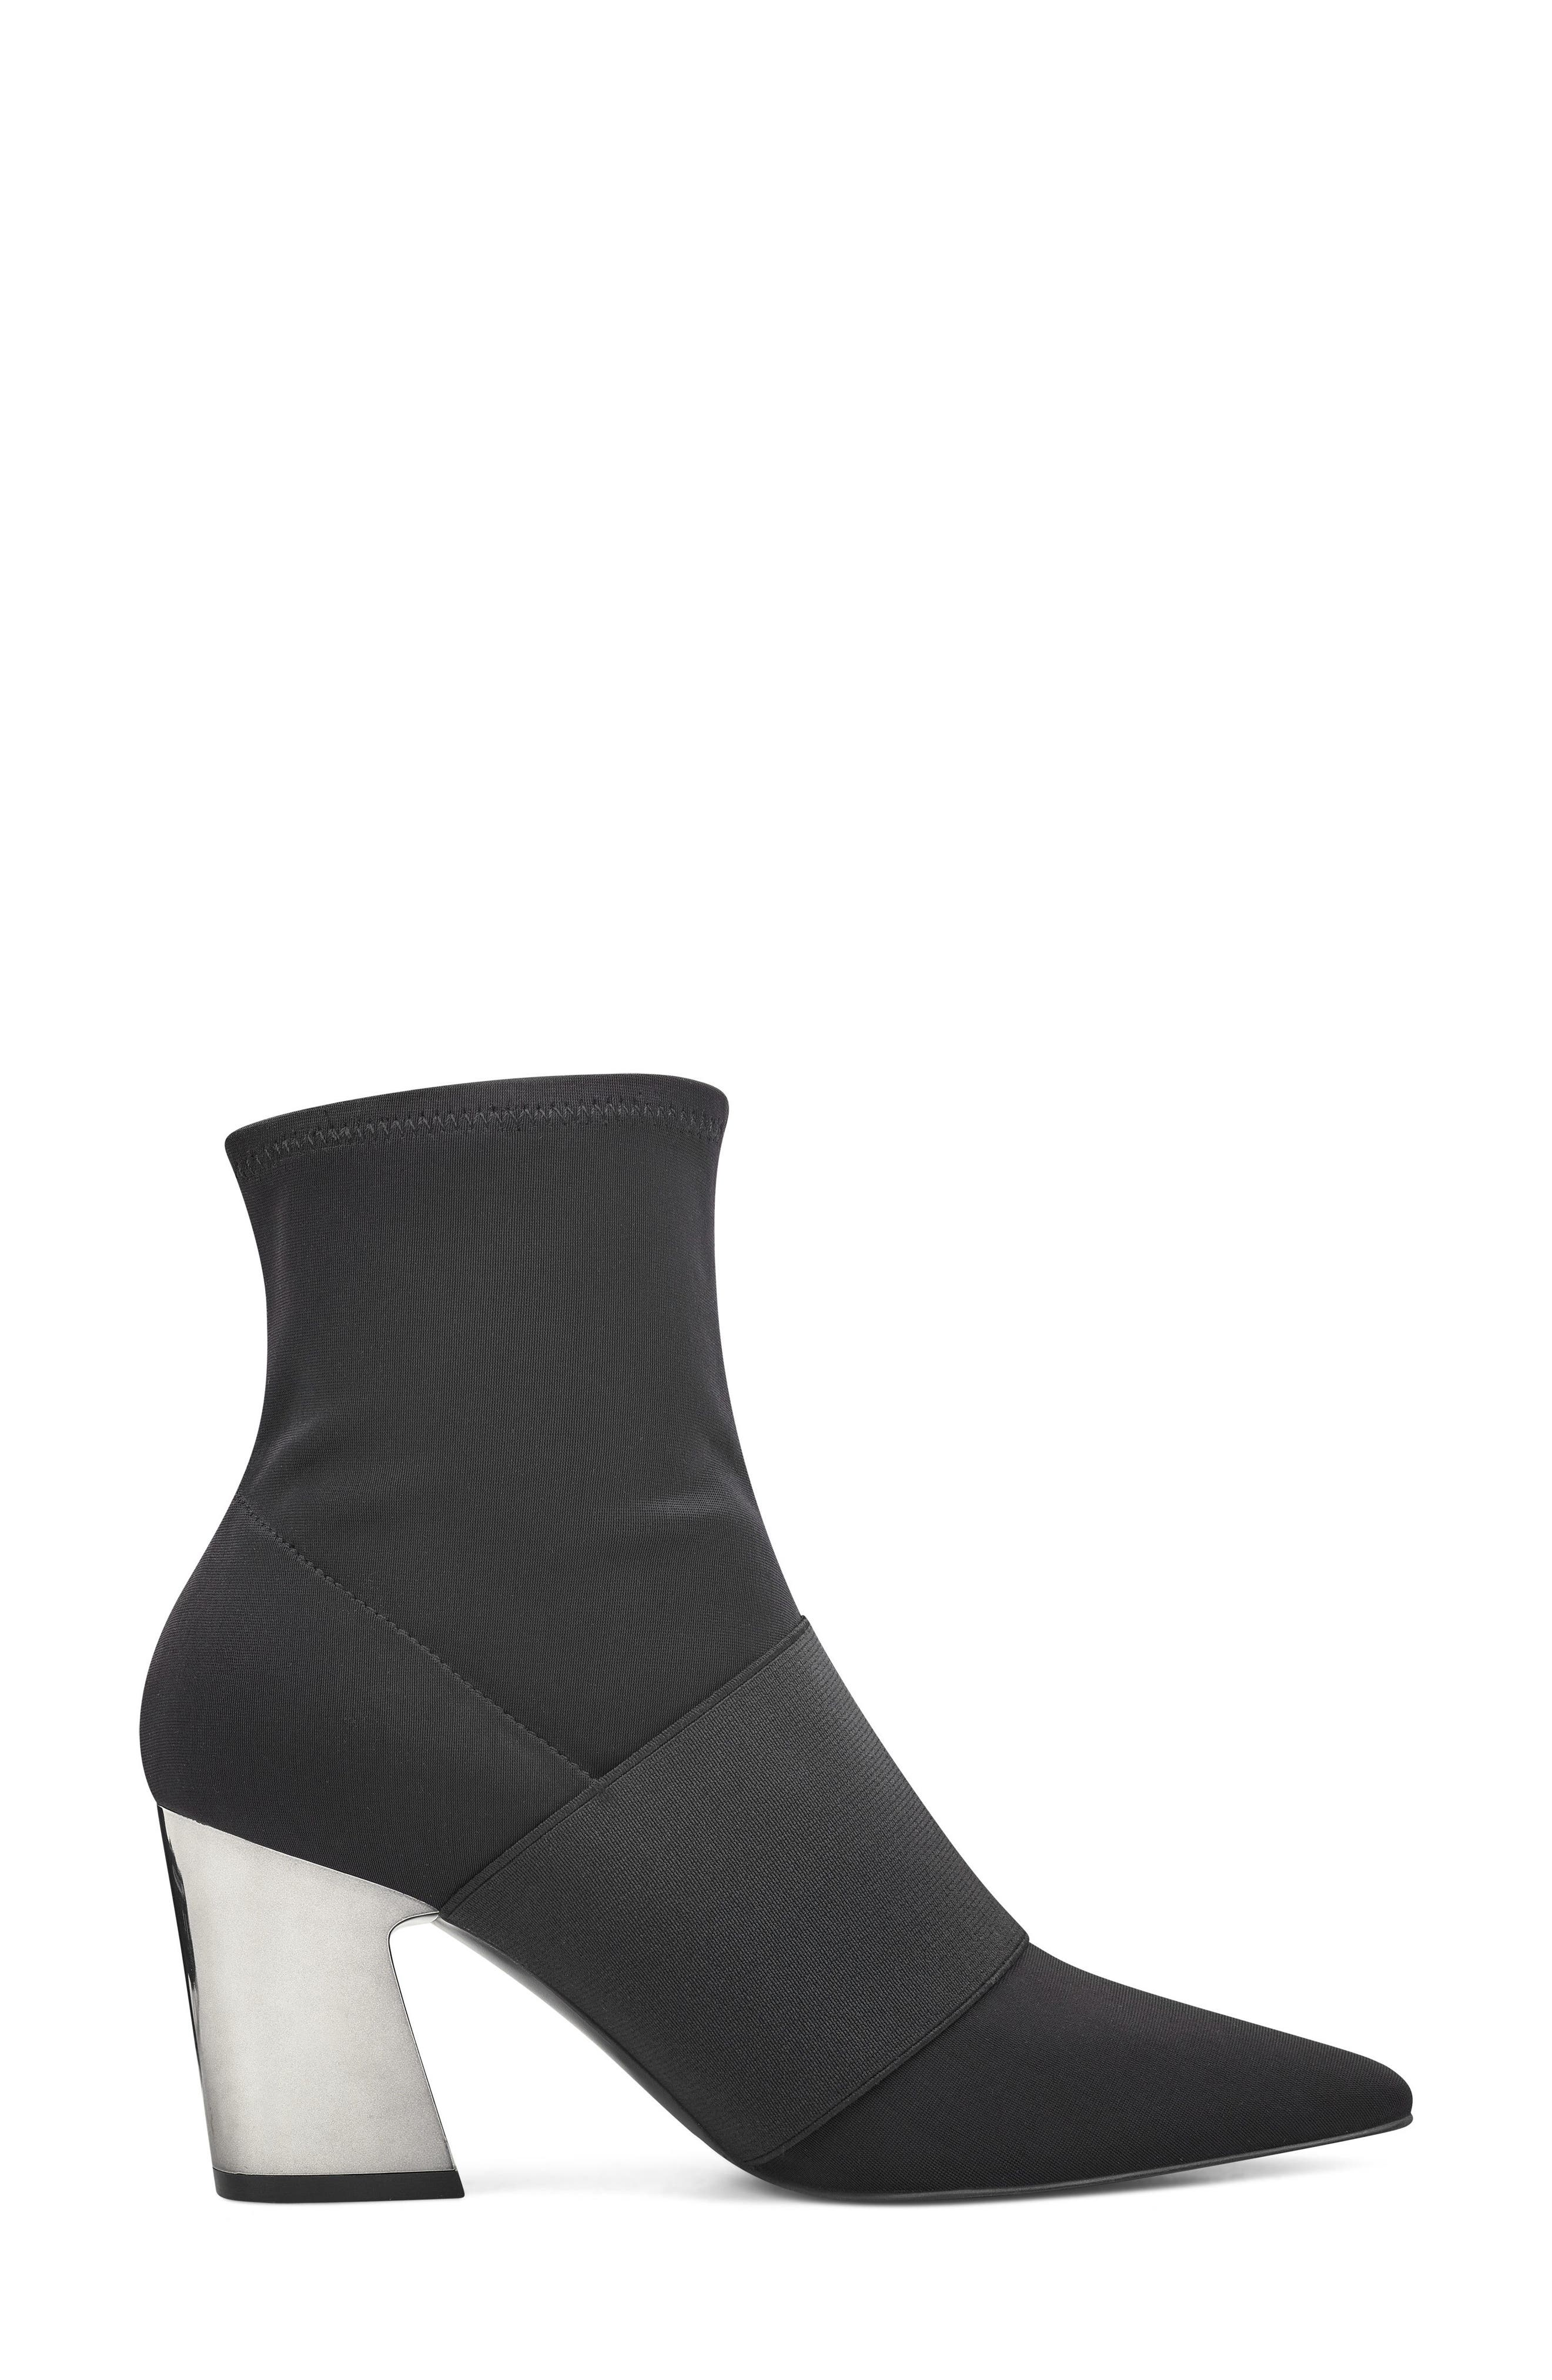 NINE WEST, Delayna Boot, Alternate thumbnail 3, color, 001